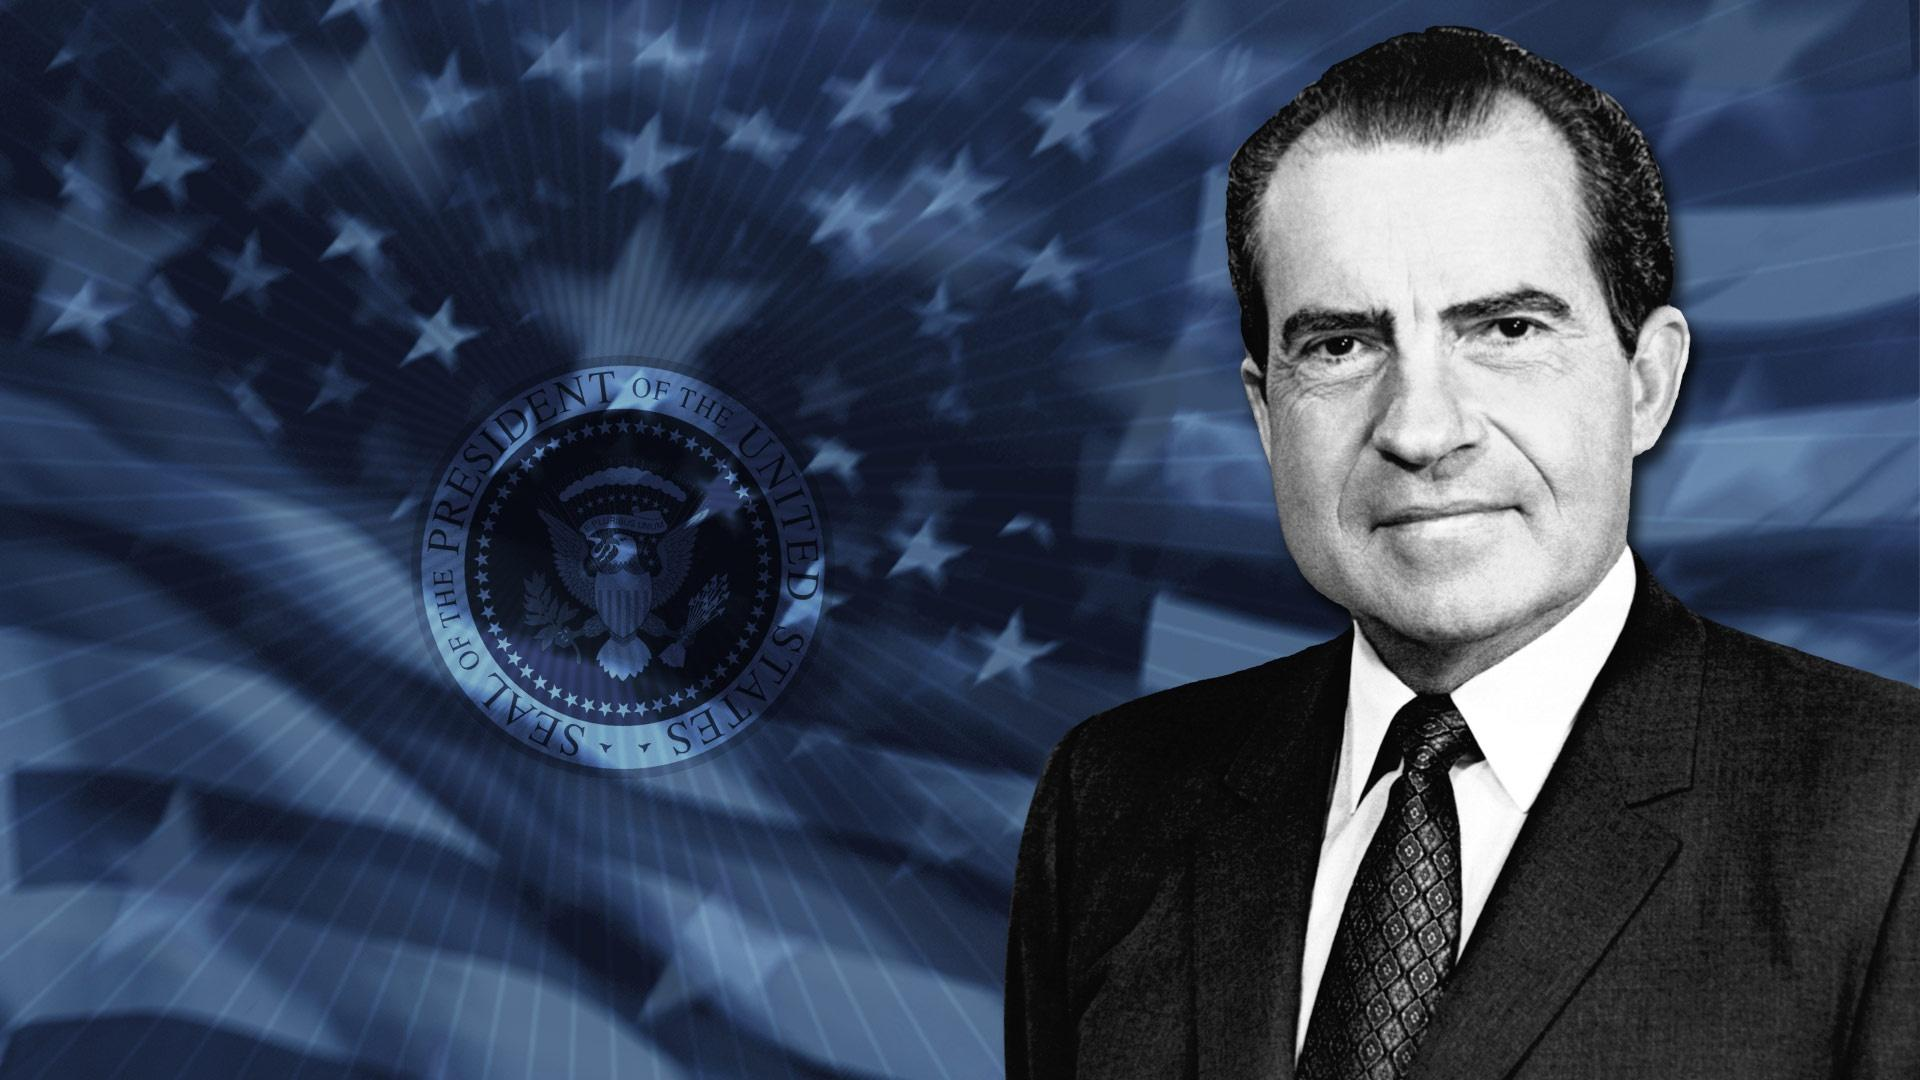 a life and career of richard nixon in americas hitory Richard nixon was the 37th us president and the largest in american history up to an intensely personal examination of his life, public career and.